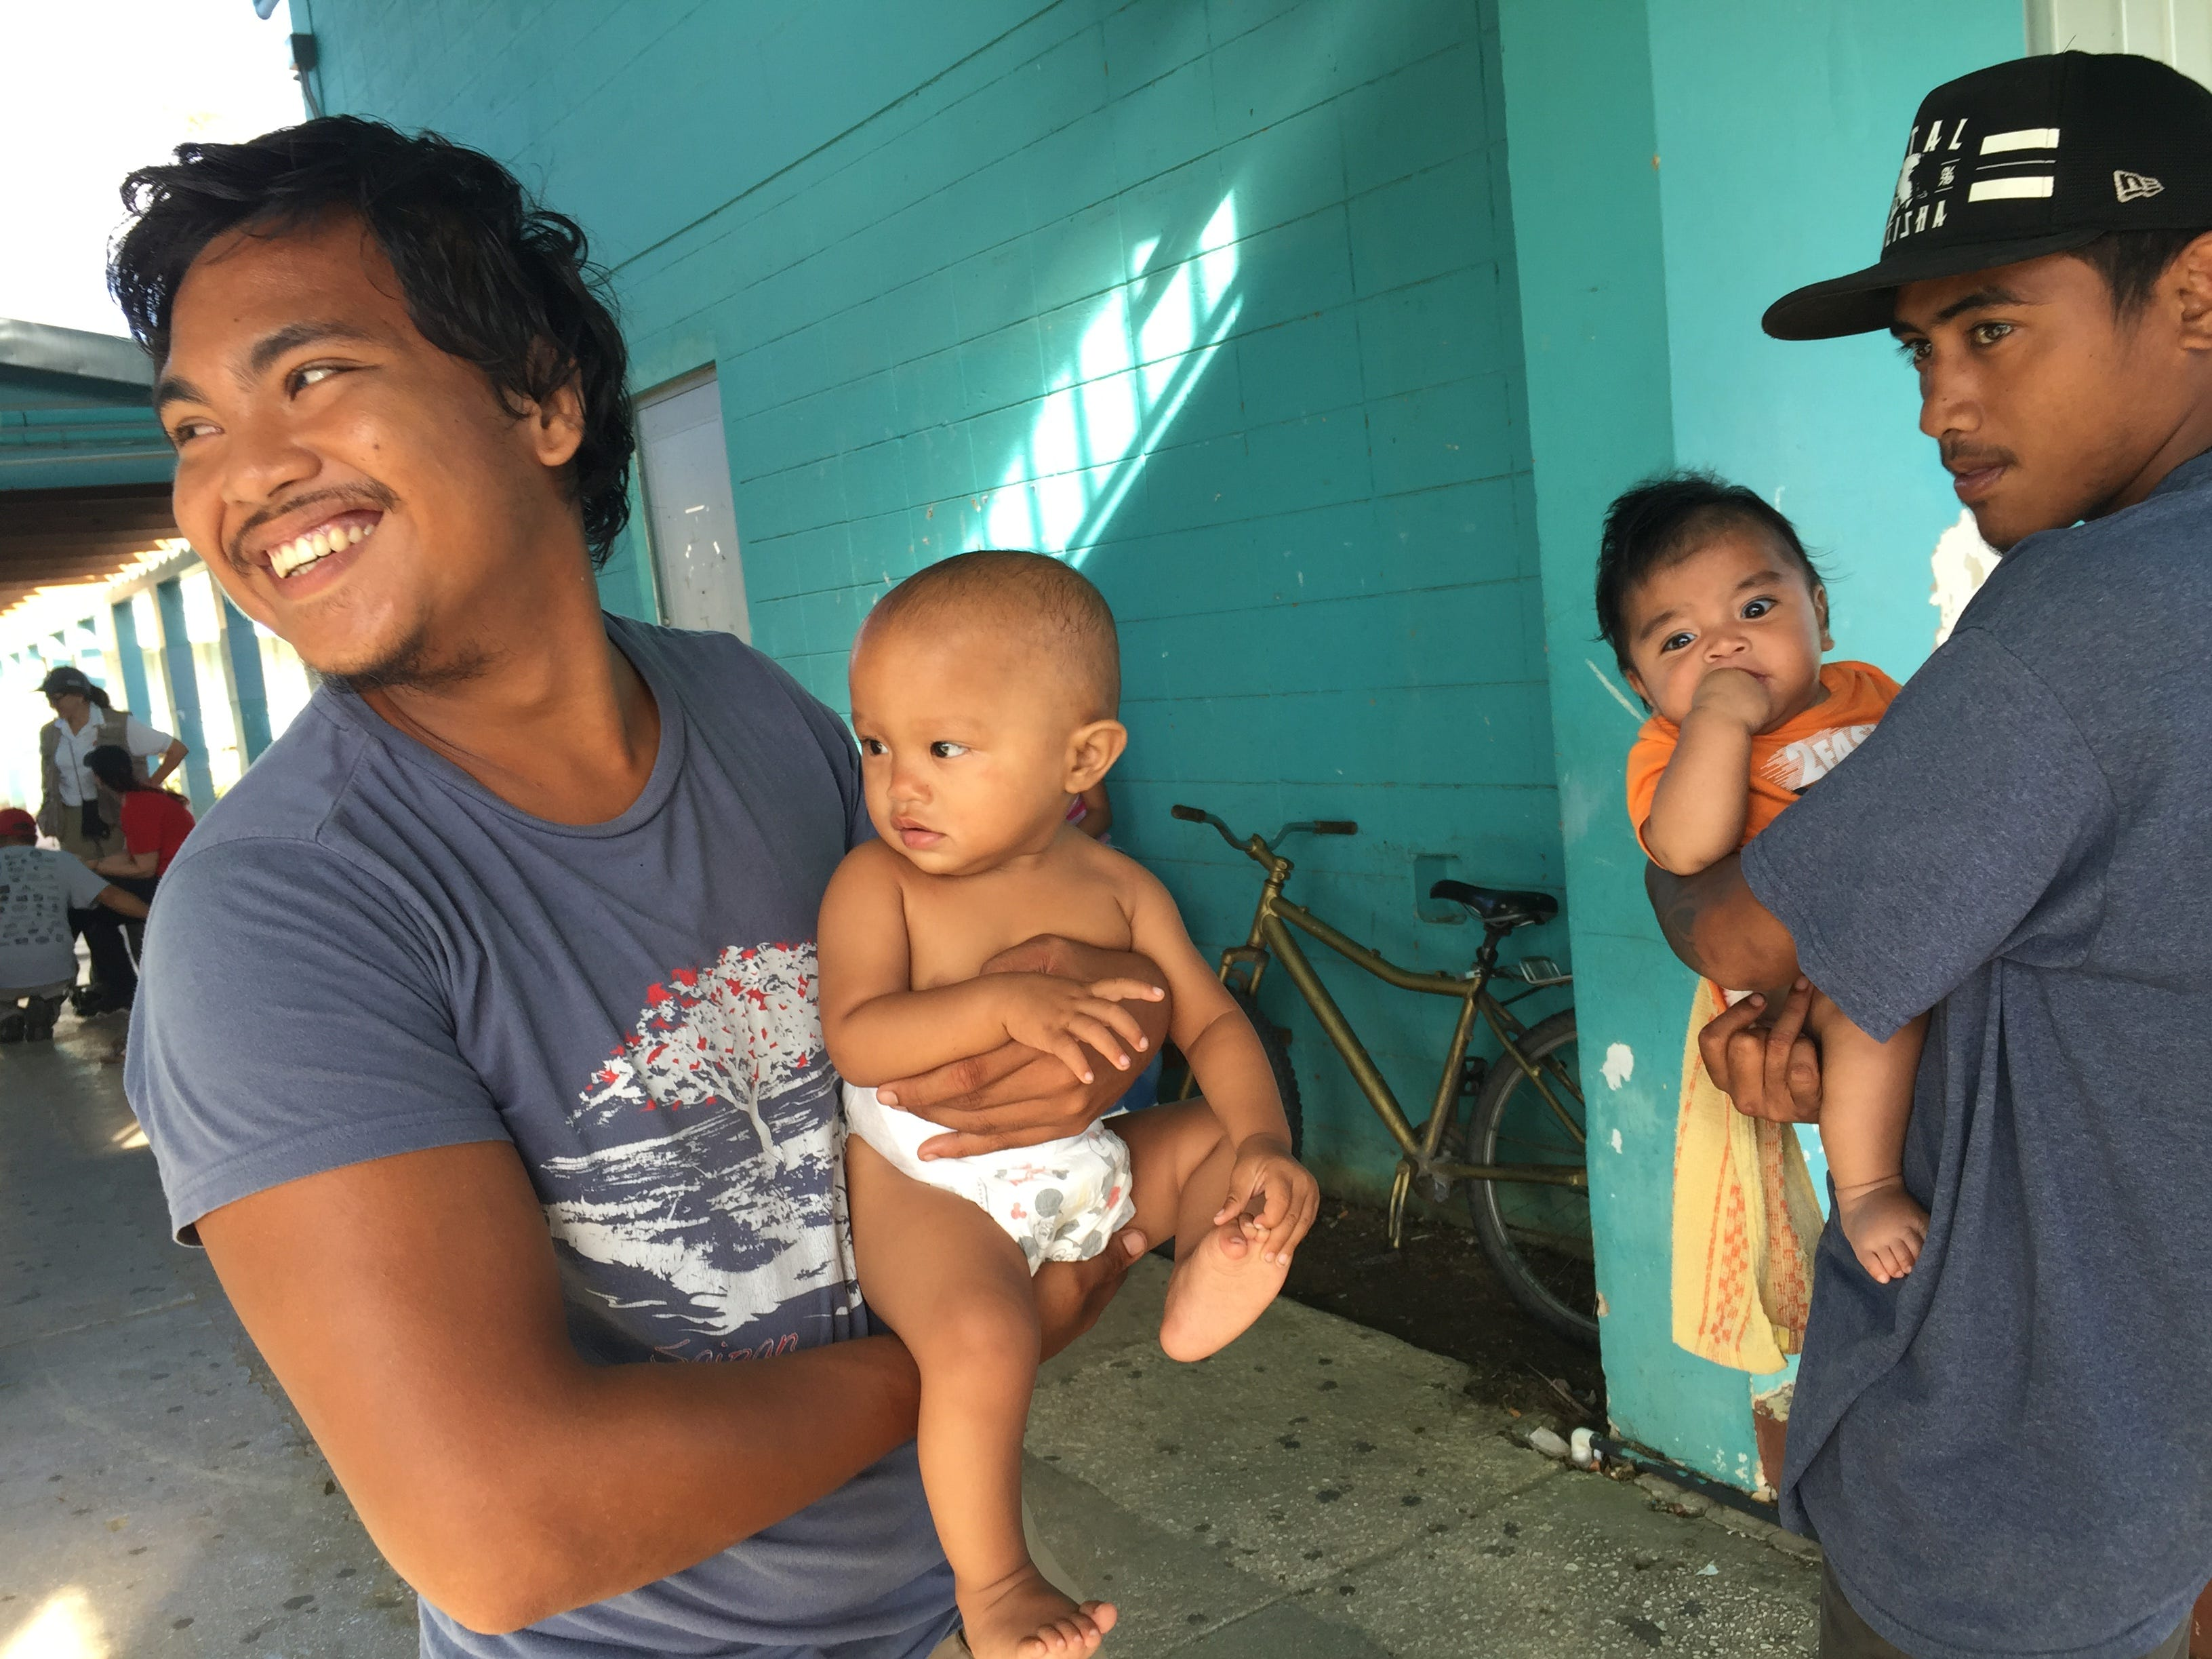 Larry Ada, 20, left, and his daughter Emylinn, 9 months, enjoy a light moment with relatives Greg Angui, 20, right, and Daniel Acosta, 7 months, at Marianas High School on Saipan. The extended family remained sheltered on Nov. 1, 2018, a week after Super Typhoon Yutu.